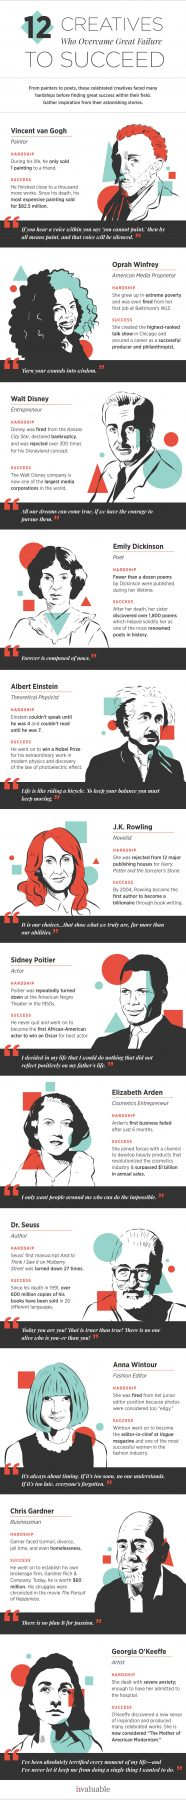 Overcoming Failure Infographic featuring successful famous people